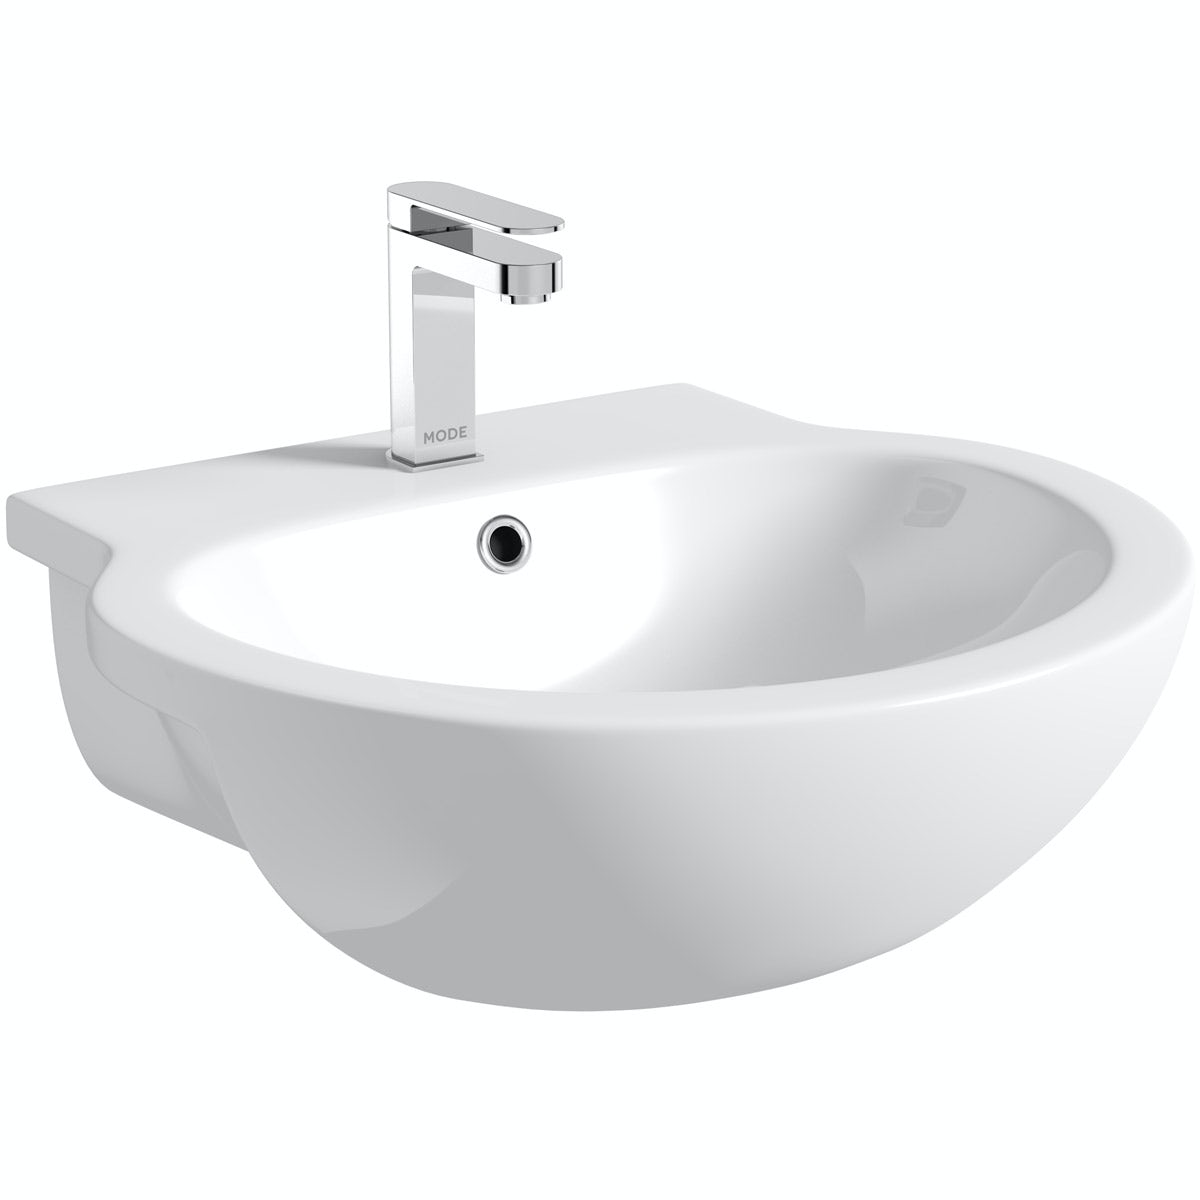 Orchard Maine 1 tap hole semi recessed countertop basin 545mm